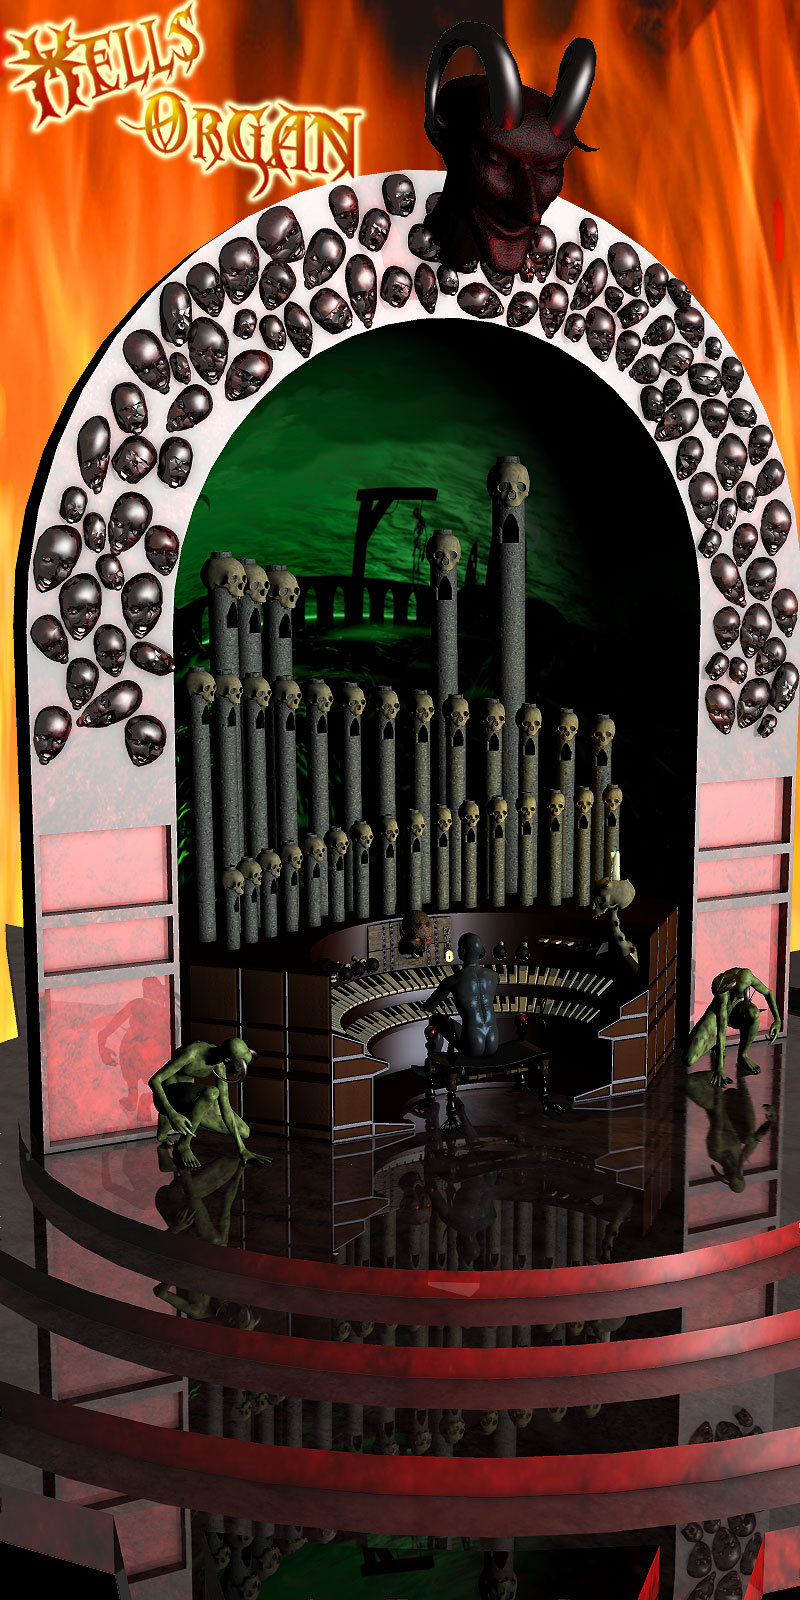 The Hell Organ